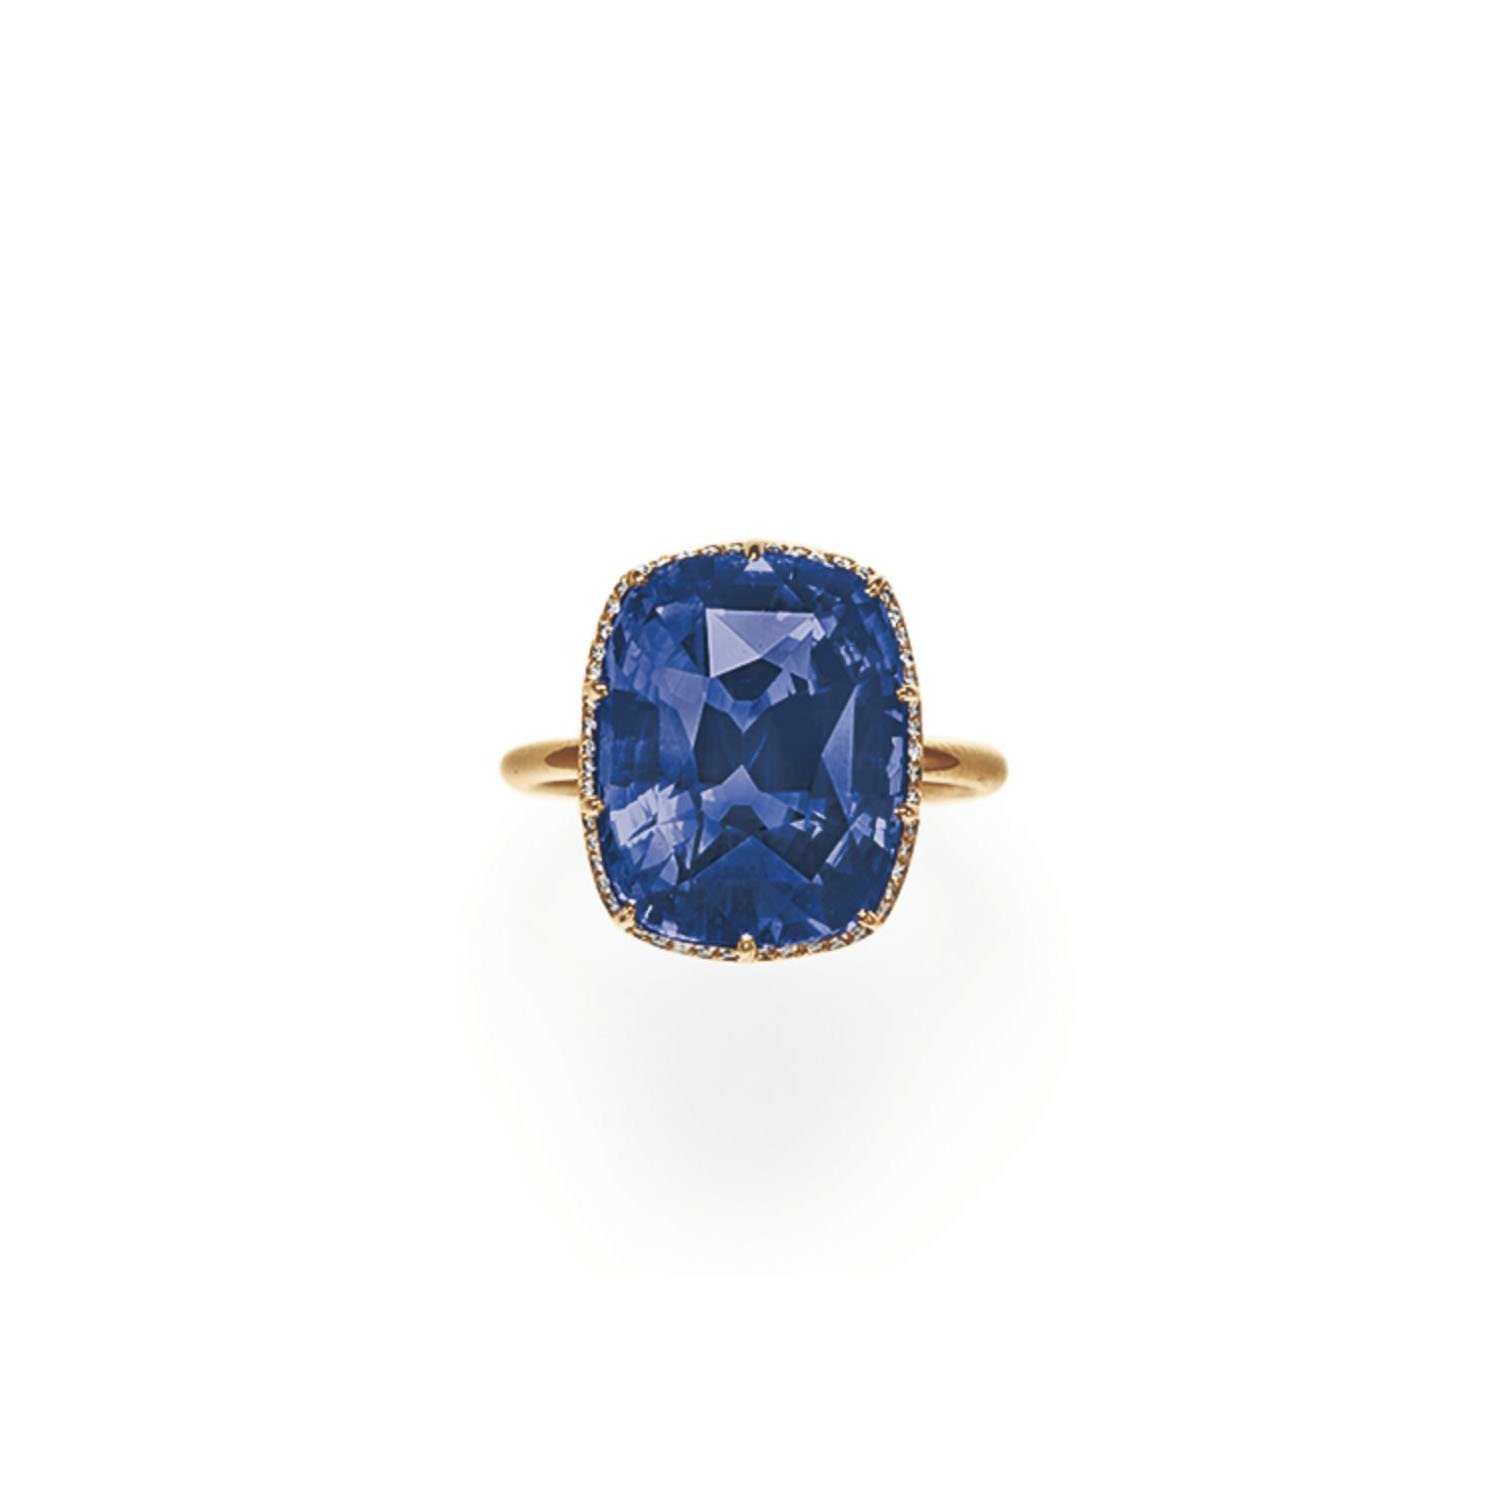 A COLOR-CHANGE SAPPHIRE AND DIAMOND RING